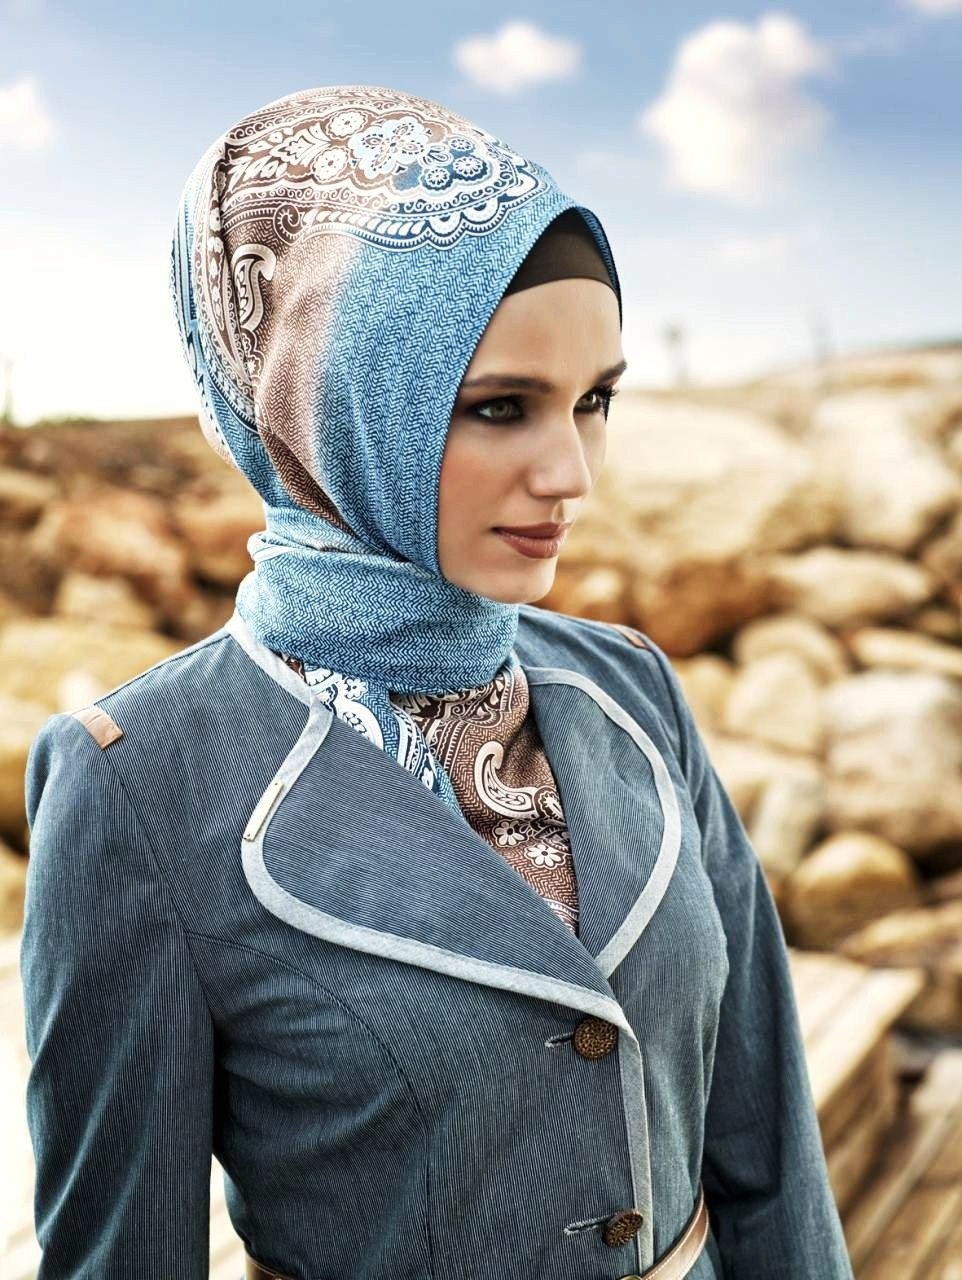 Muslim fashion 2012 styling fashion 2012 fashion trends 2012 turkish hijab style pictures Hijab fashion trends style turkish